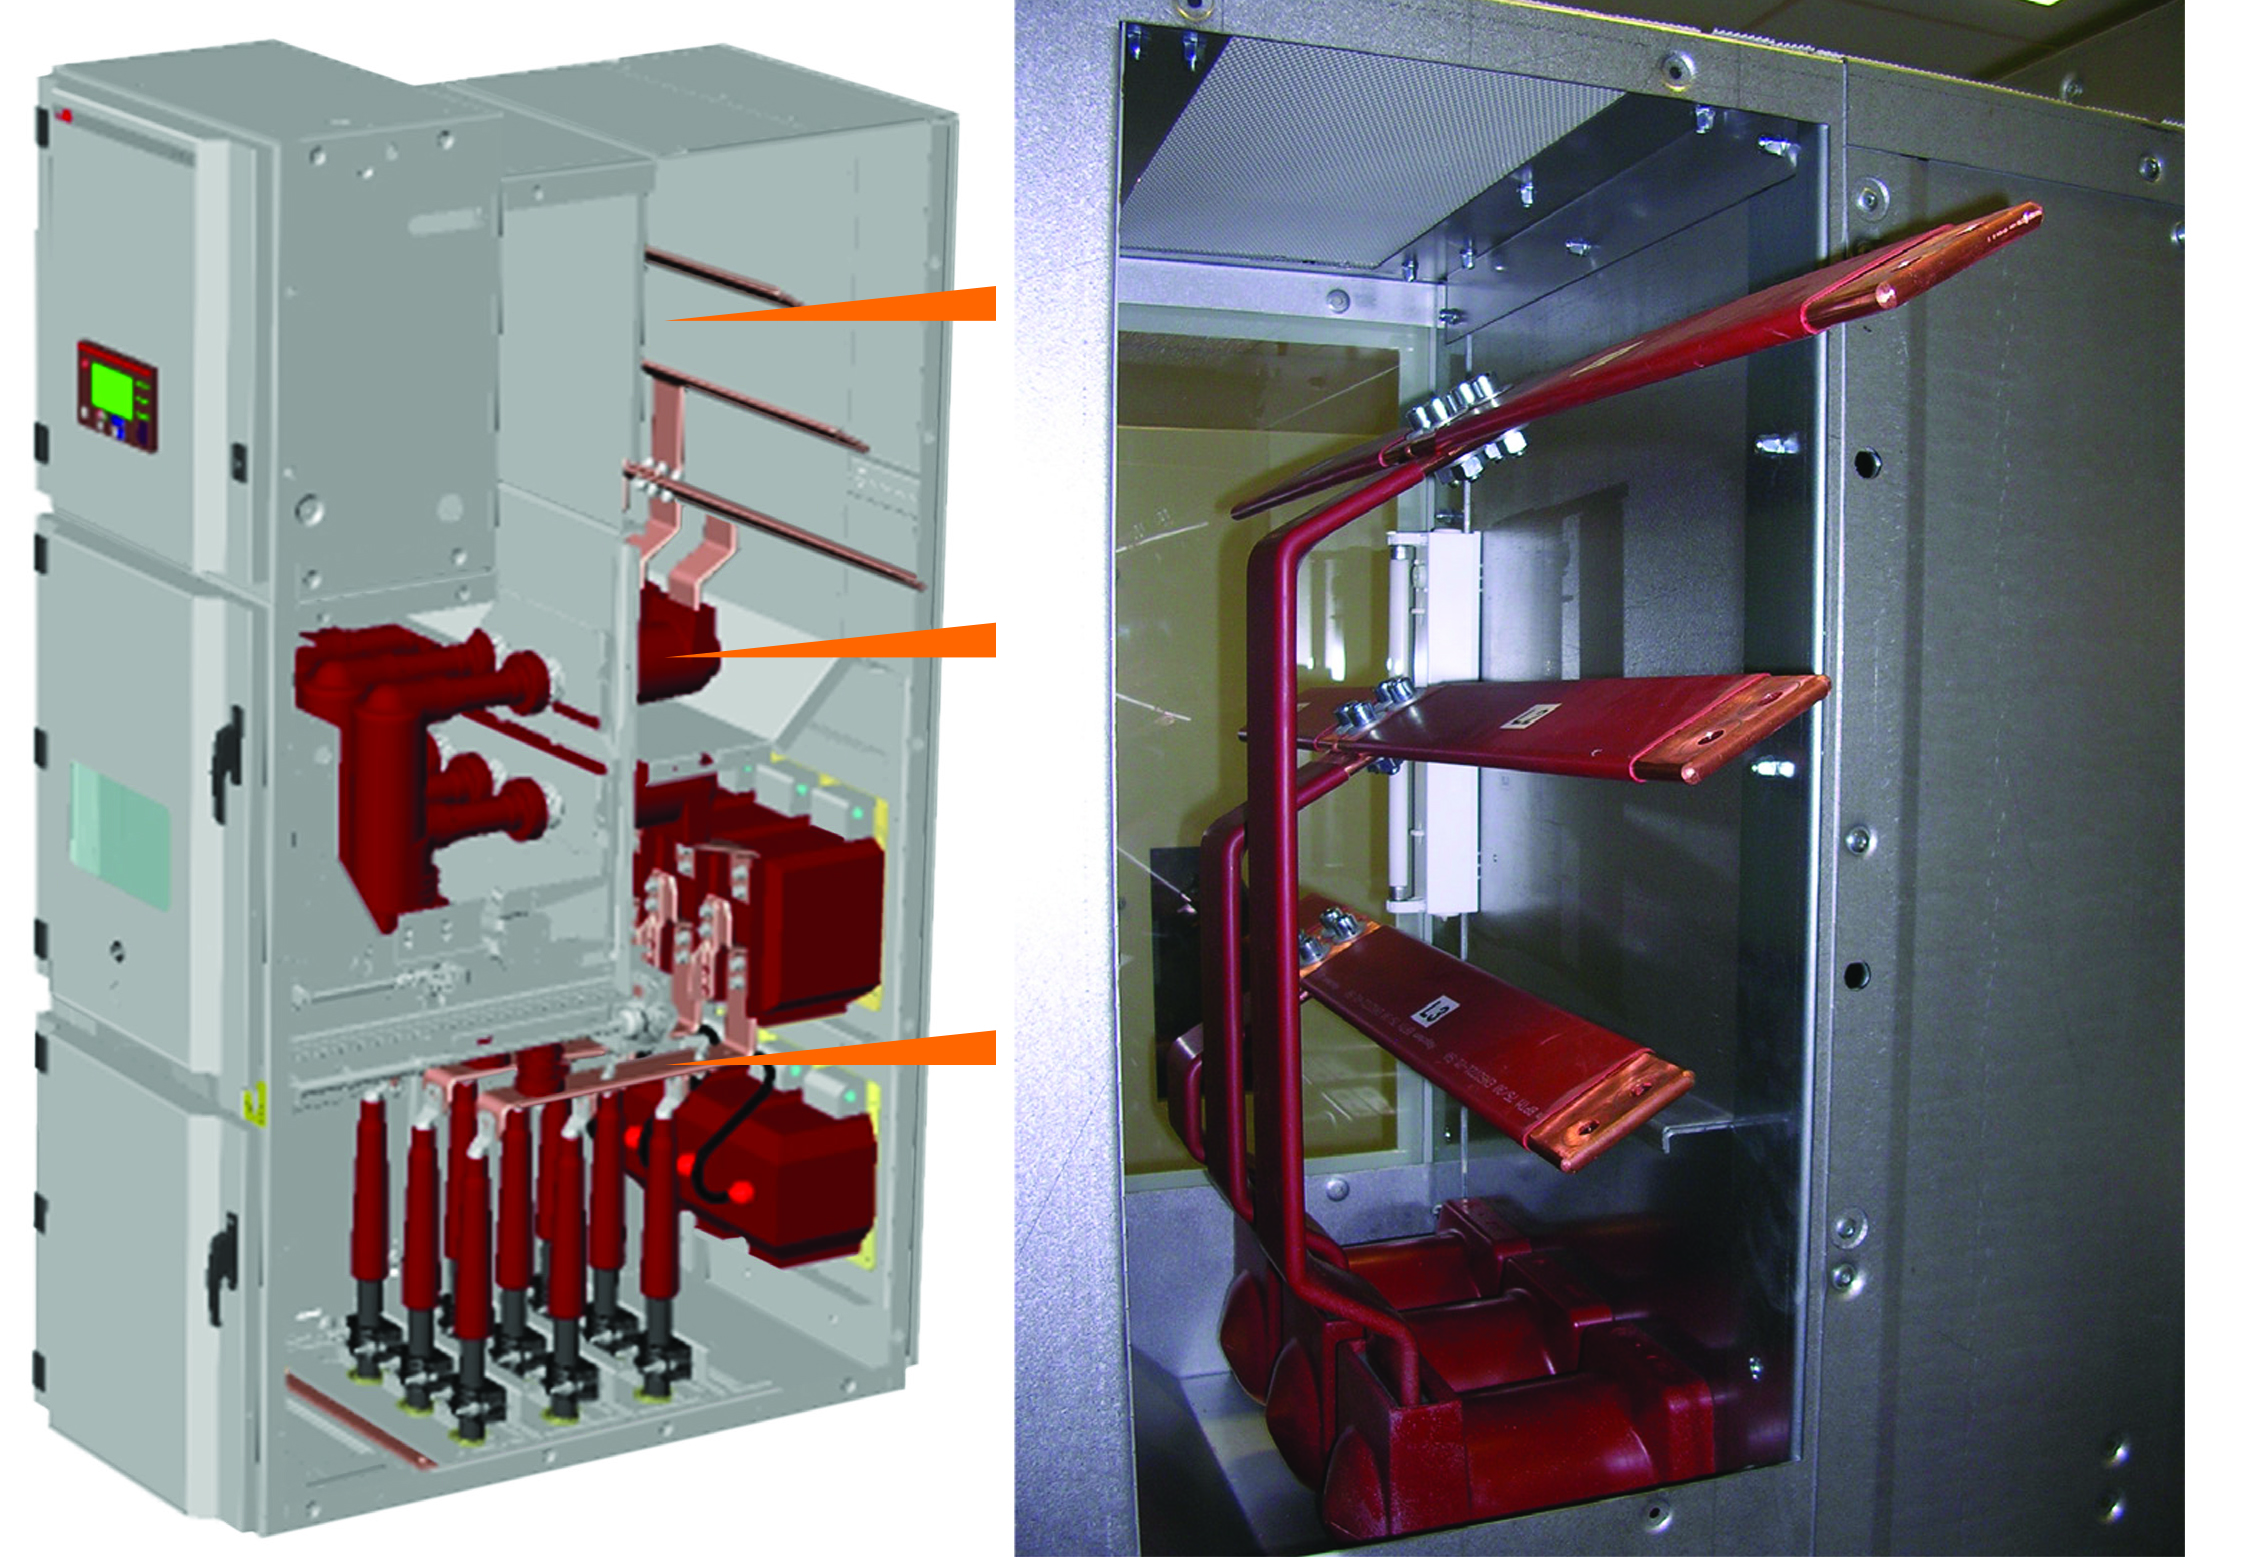 Early hot-spot detection in switchgear for condition-based